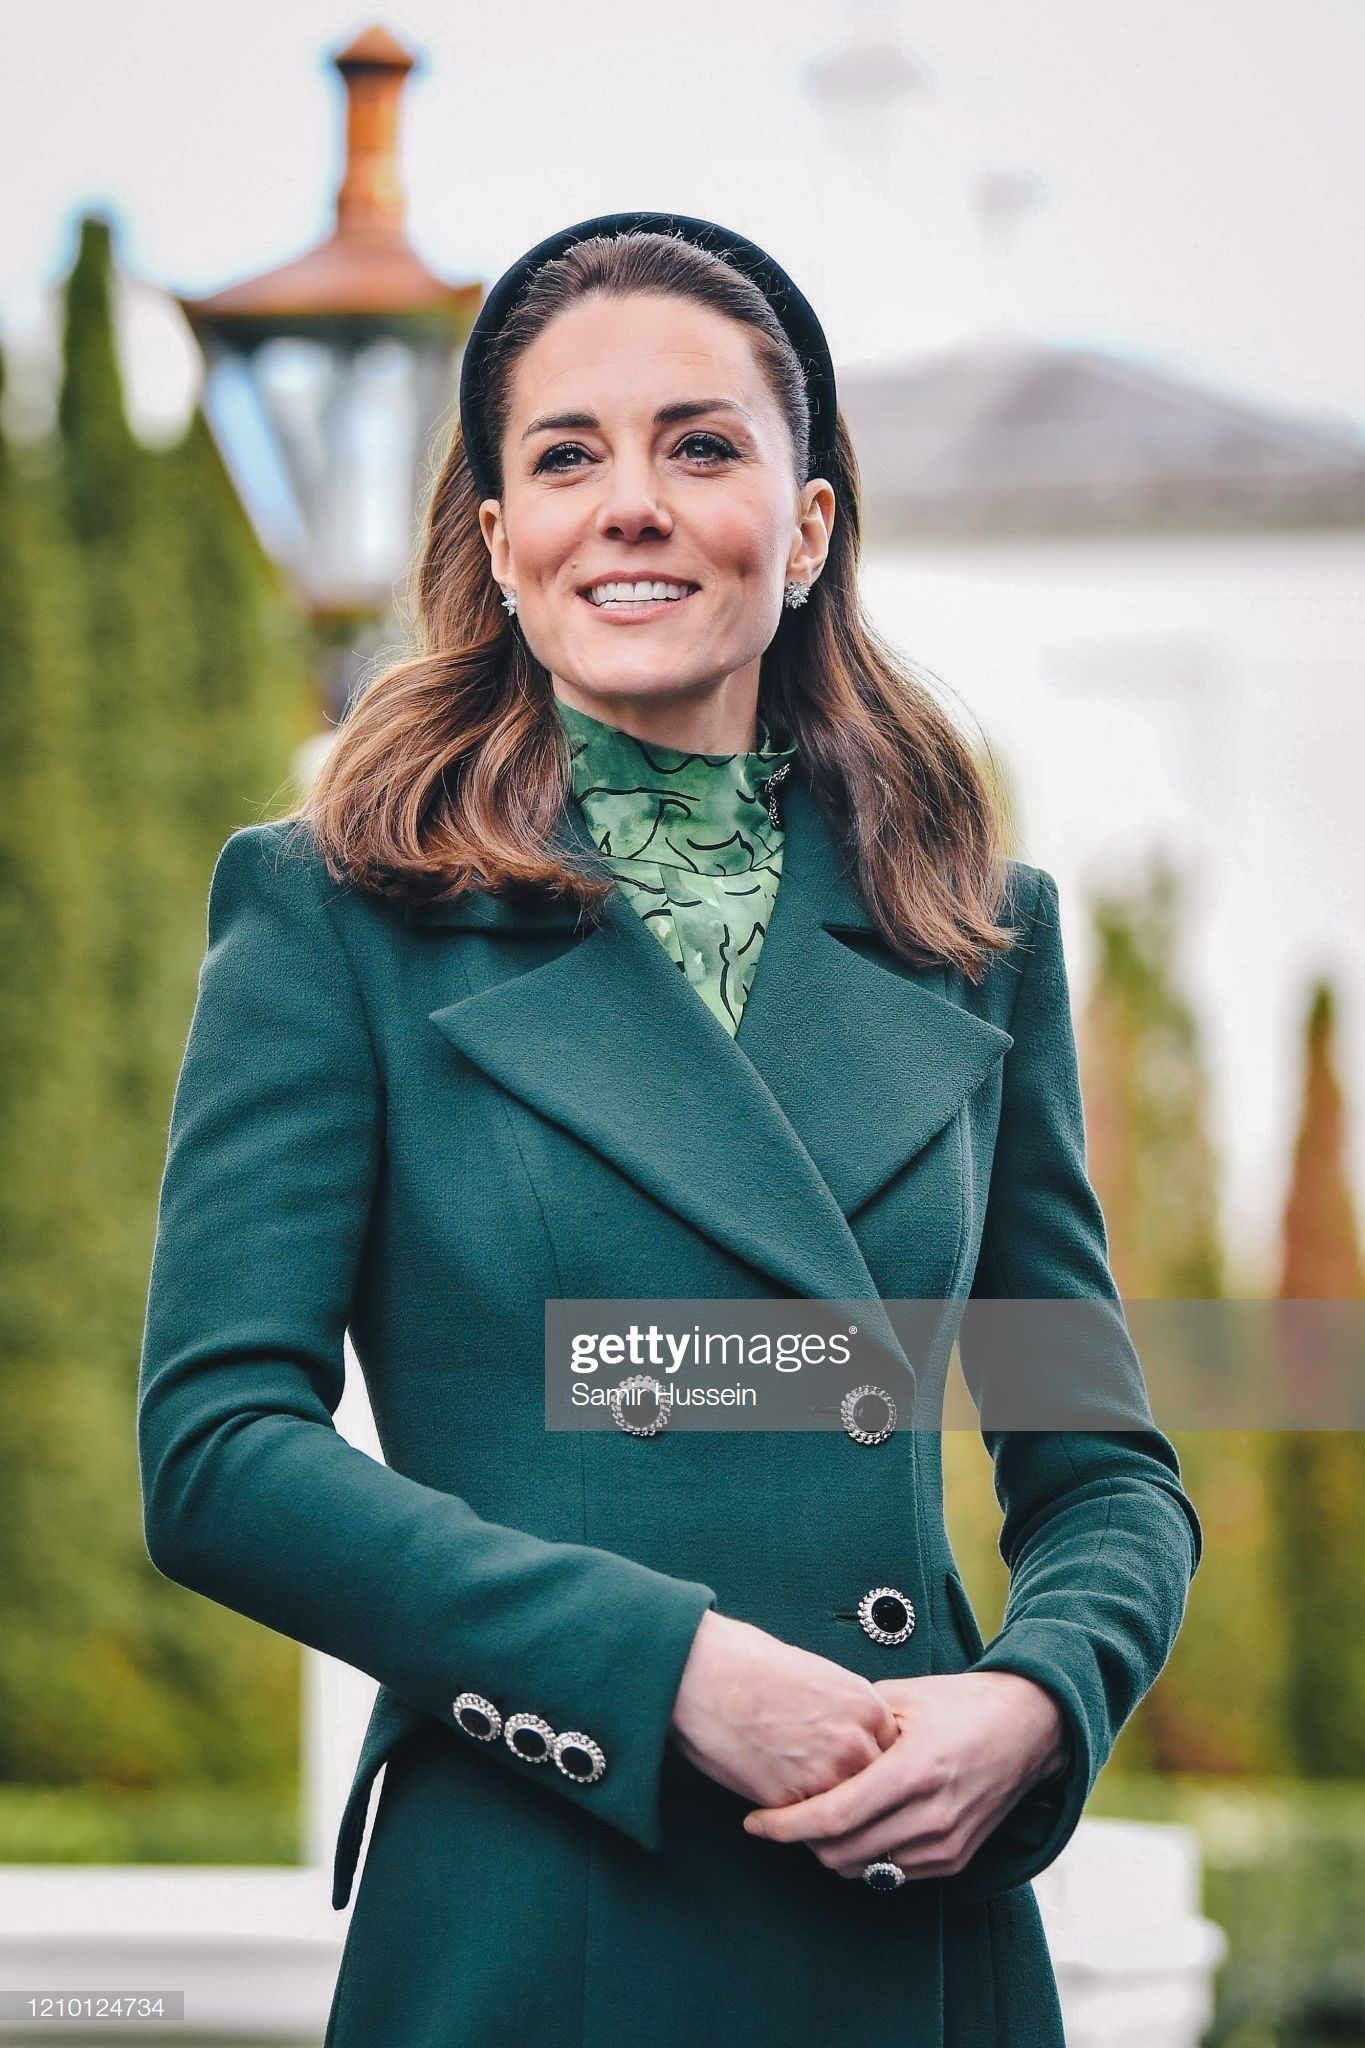 Pin By Adrienne Friederich On Cambridge Family In 2020 Duchess